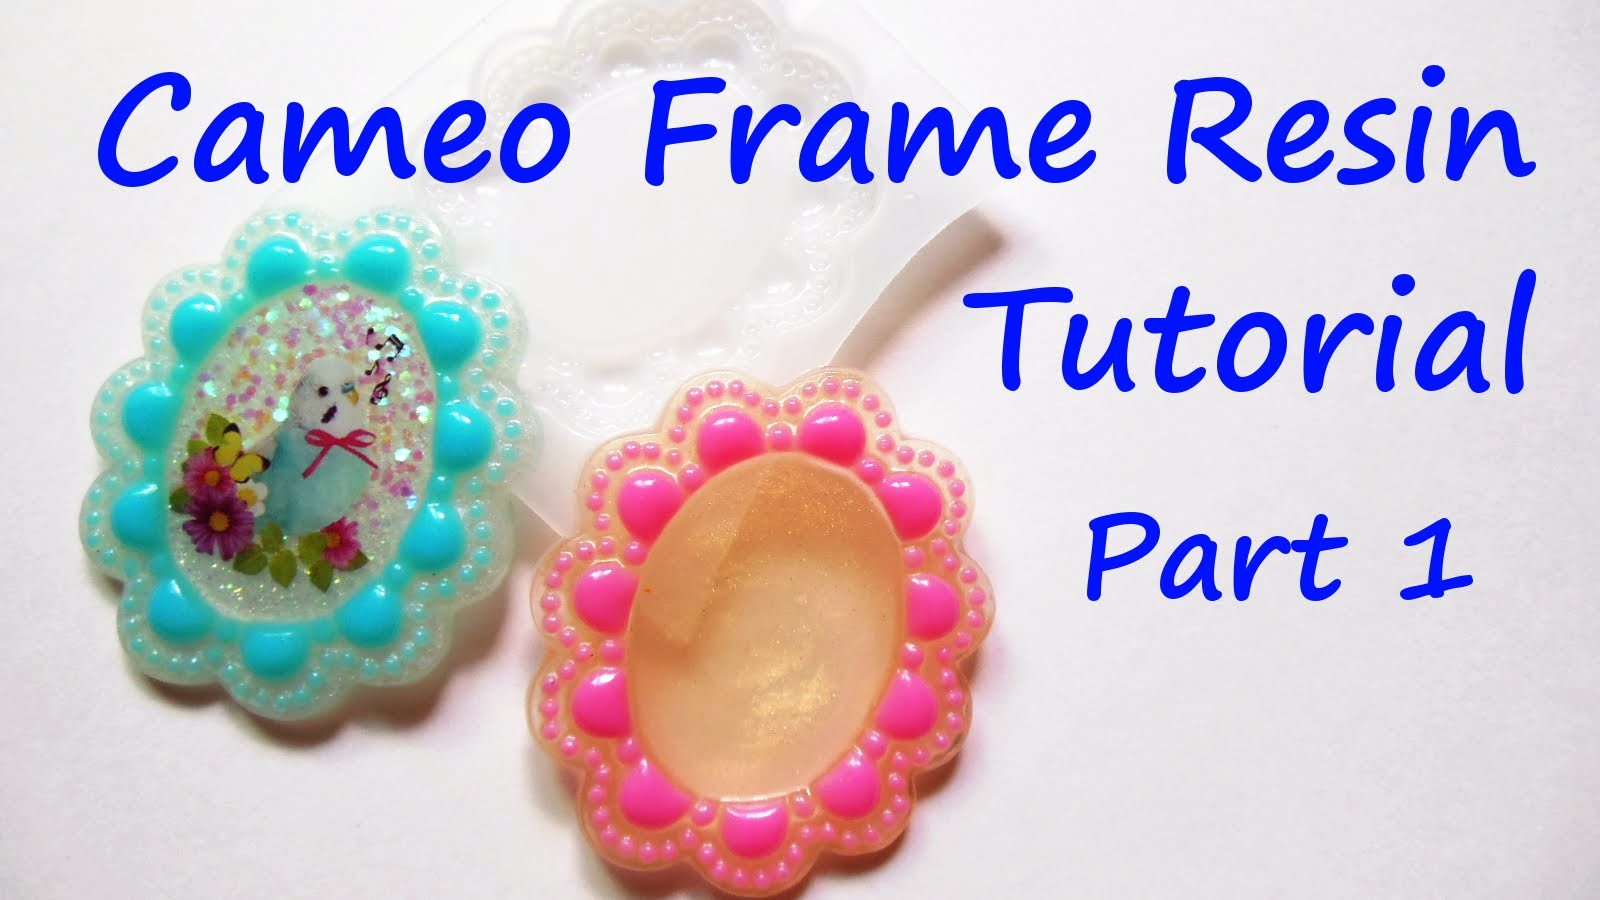 Cameo Frame Resin Tutorial Part 1